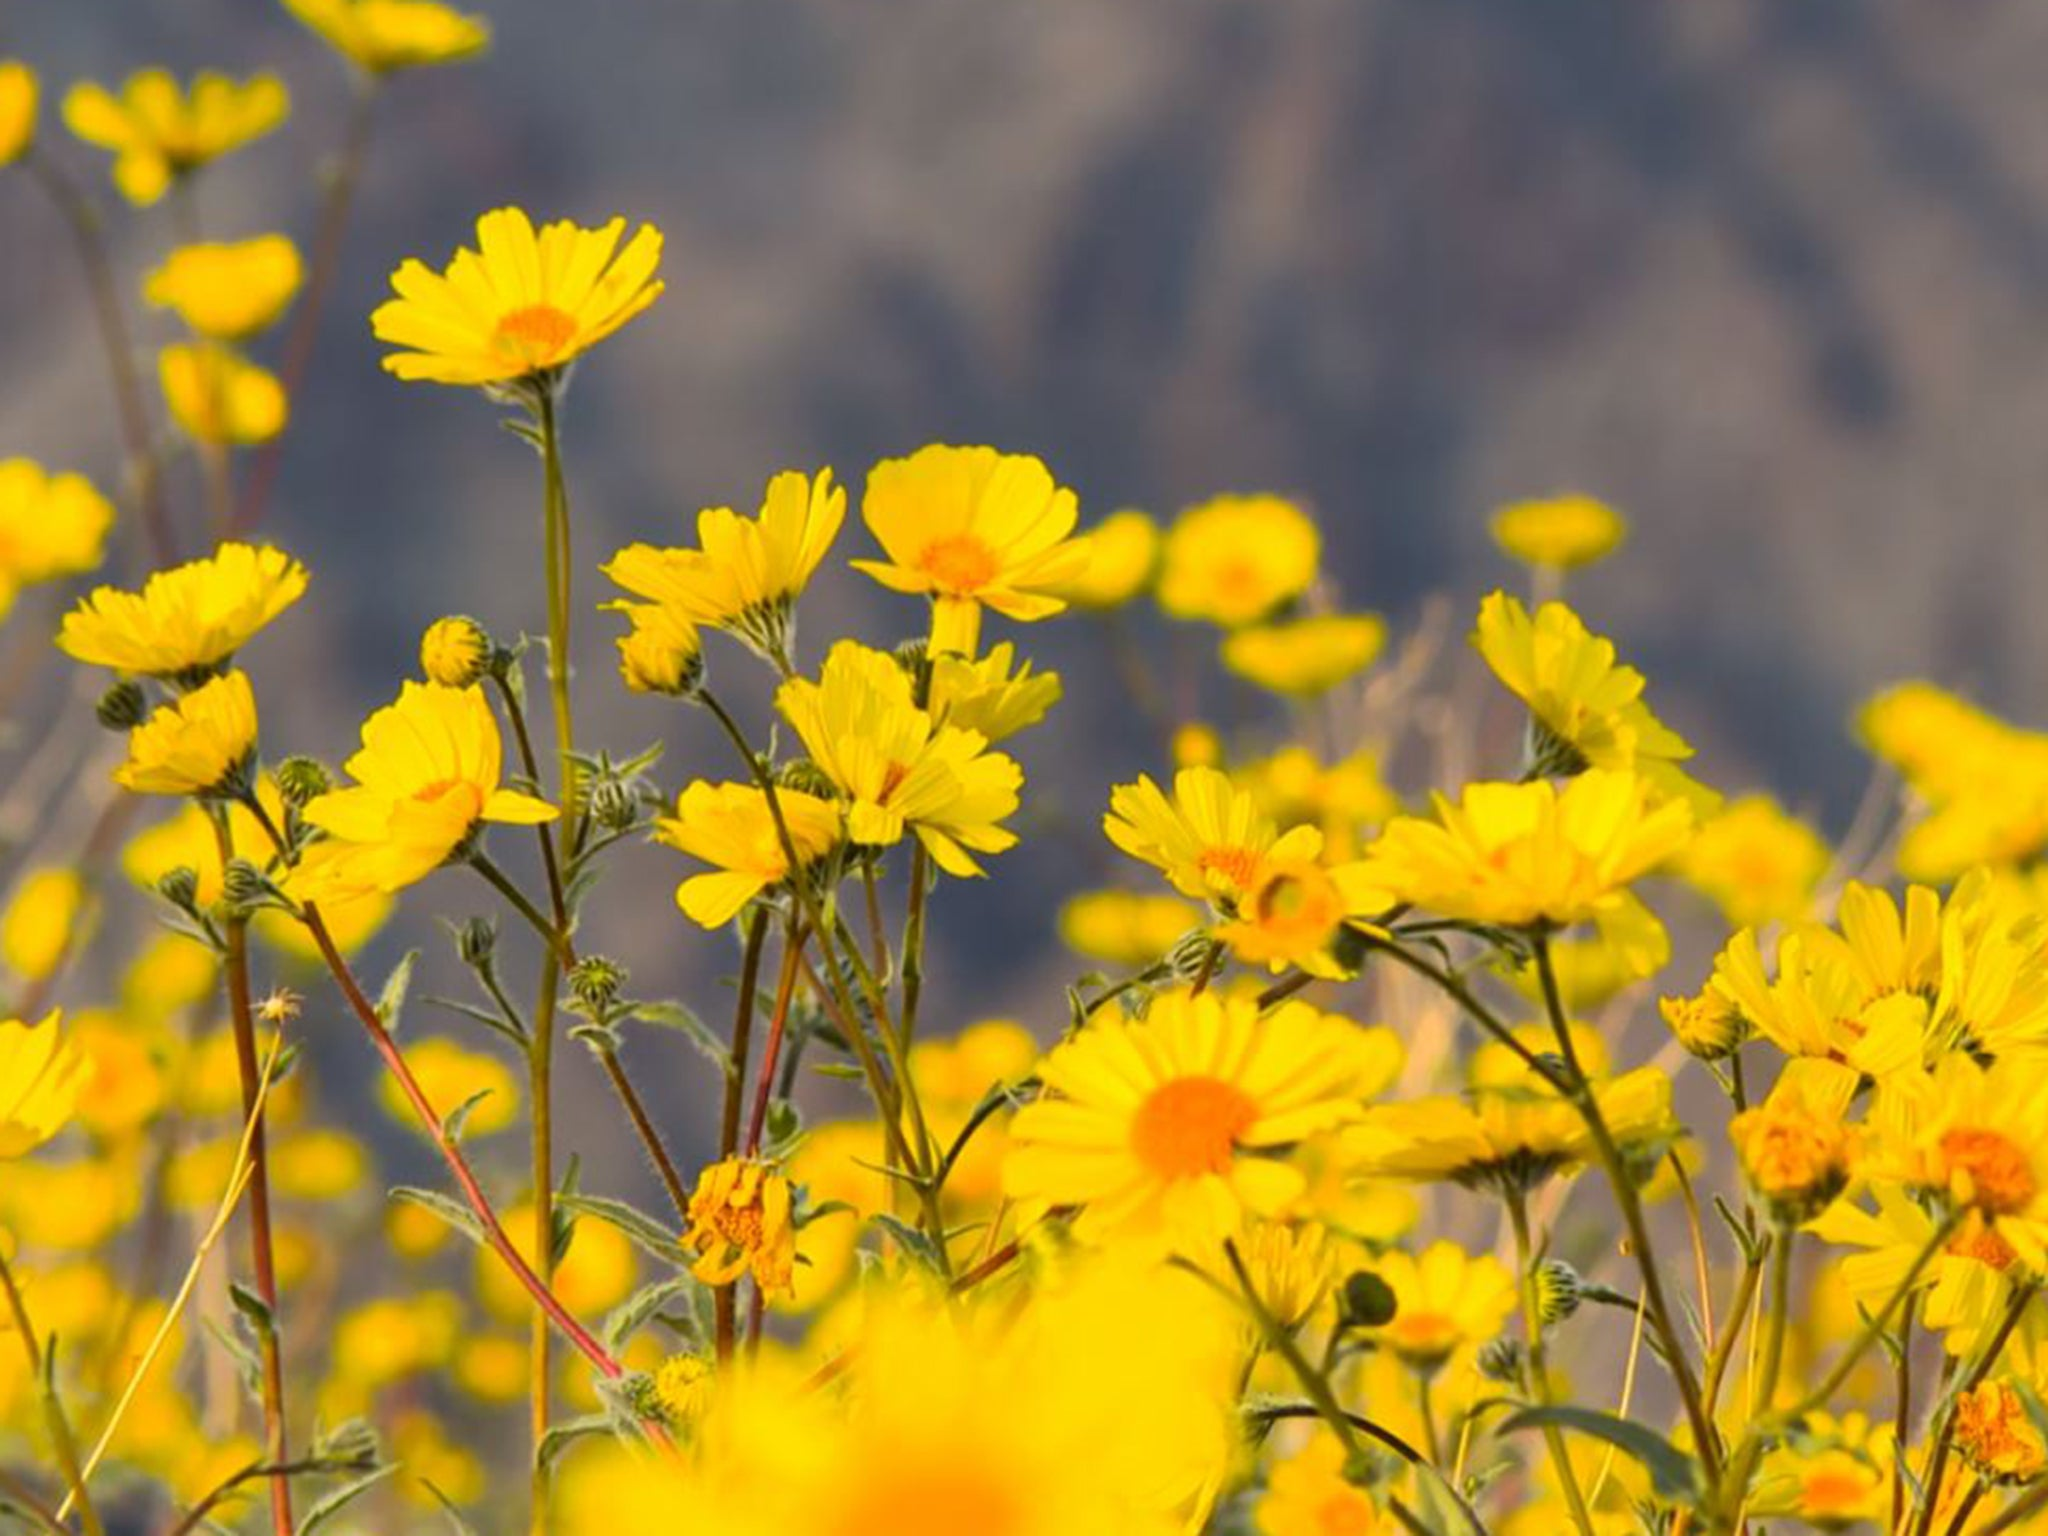 Death Valley The Hottest Place On Earth Is Covered In Wildflowers